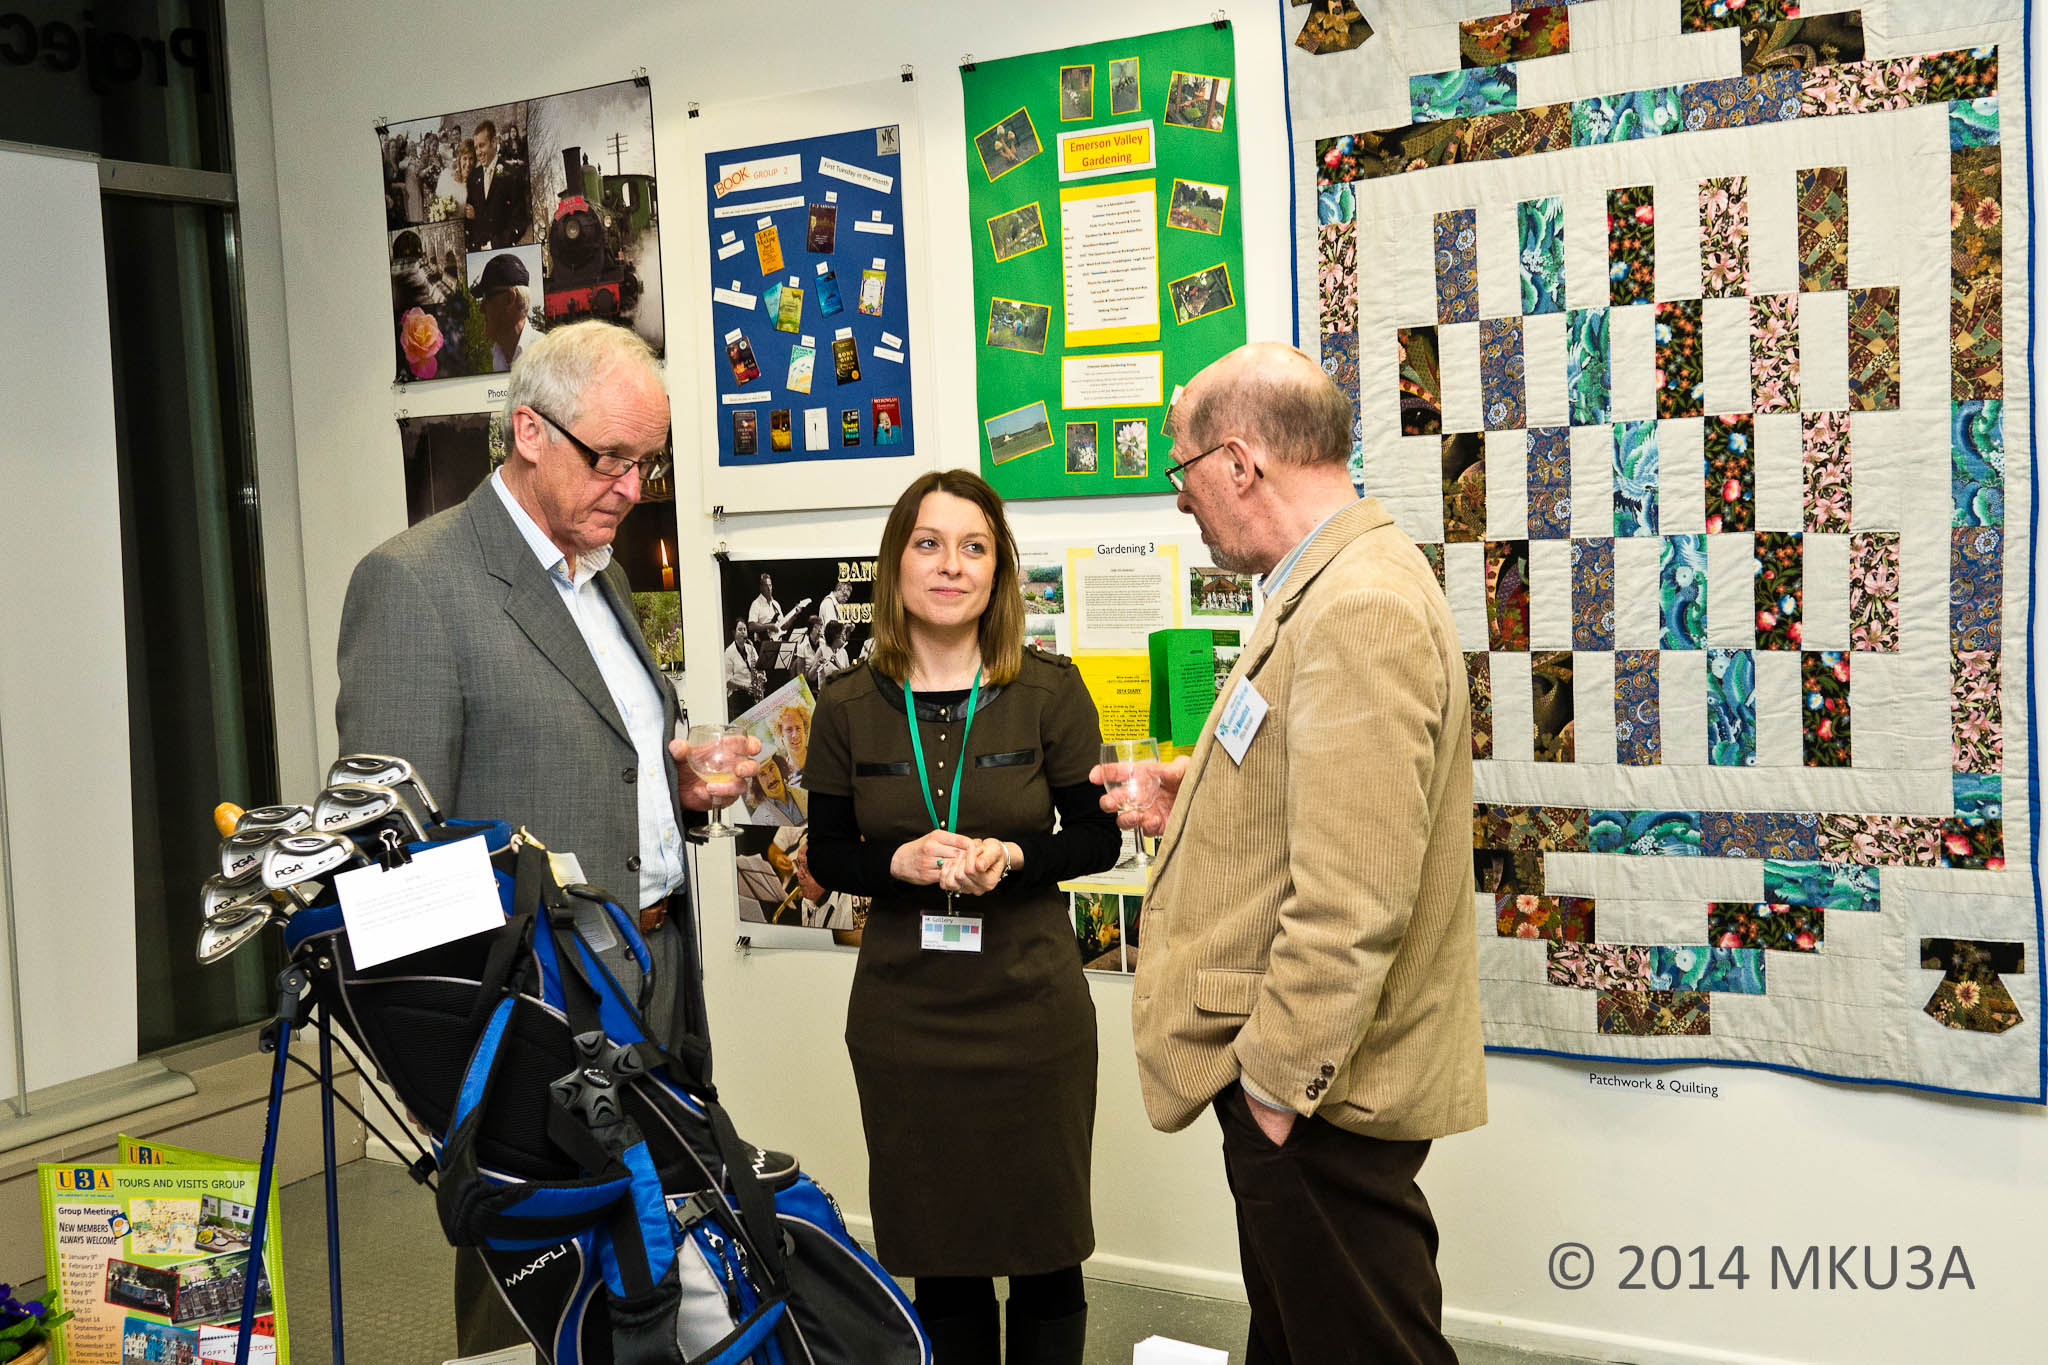 Trustees Marcel Mallens & Phil Mountford with Emma Fry of MK gallery